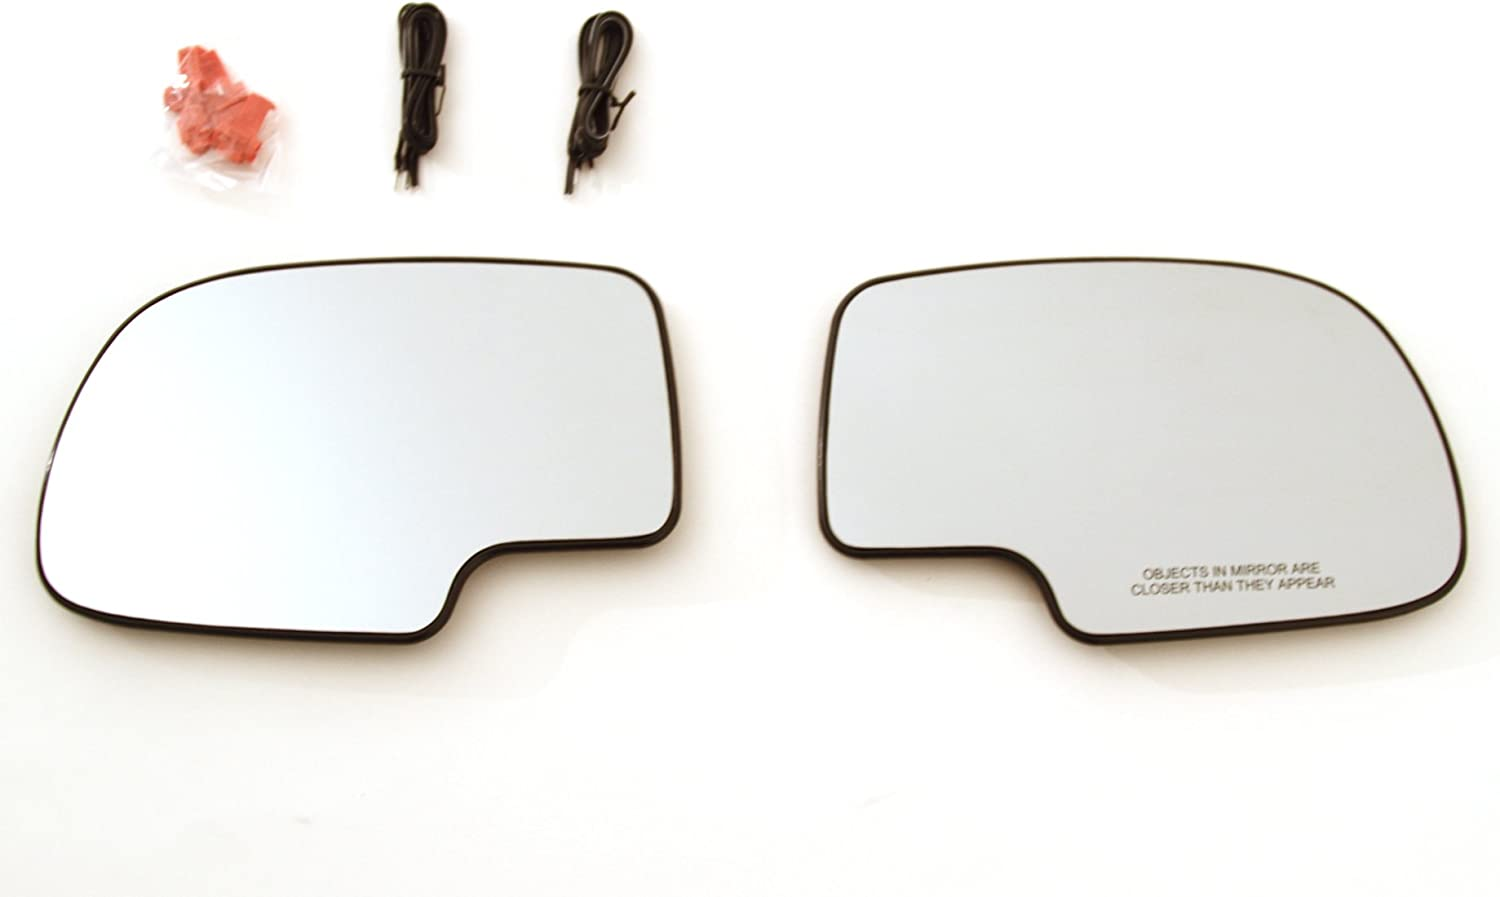 NEW PASSENGER/'S SIDE LOWER MIRROR GLASS ESCALADE SILVERADO TAHOE SIERRA SUBURBAN